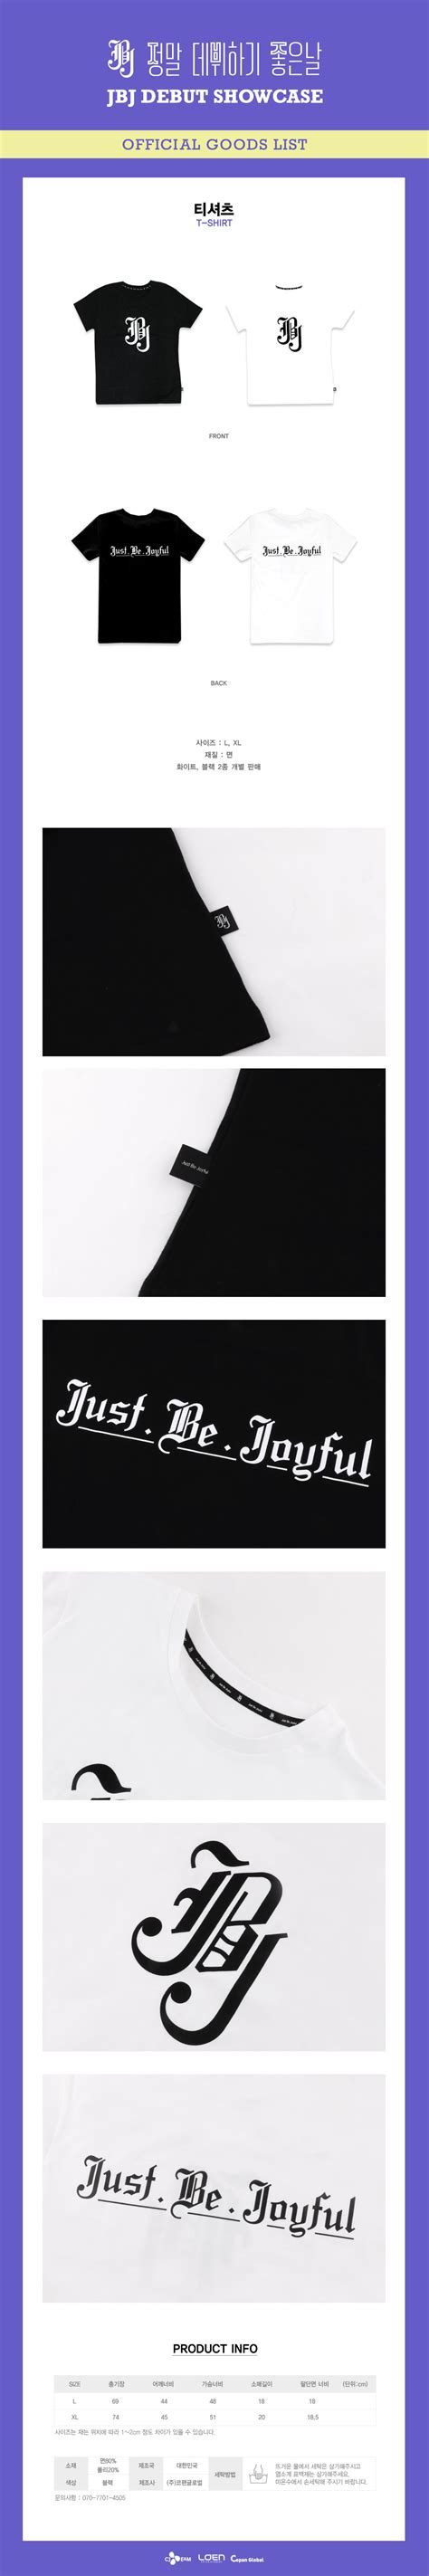 Hoodie Jbj jbj official merchandise t shirt korea plaza